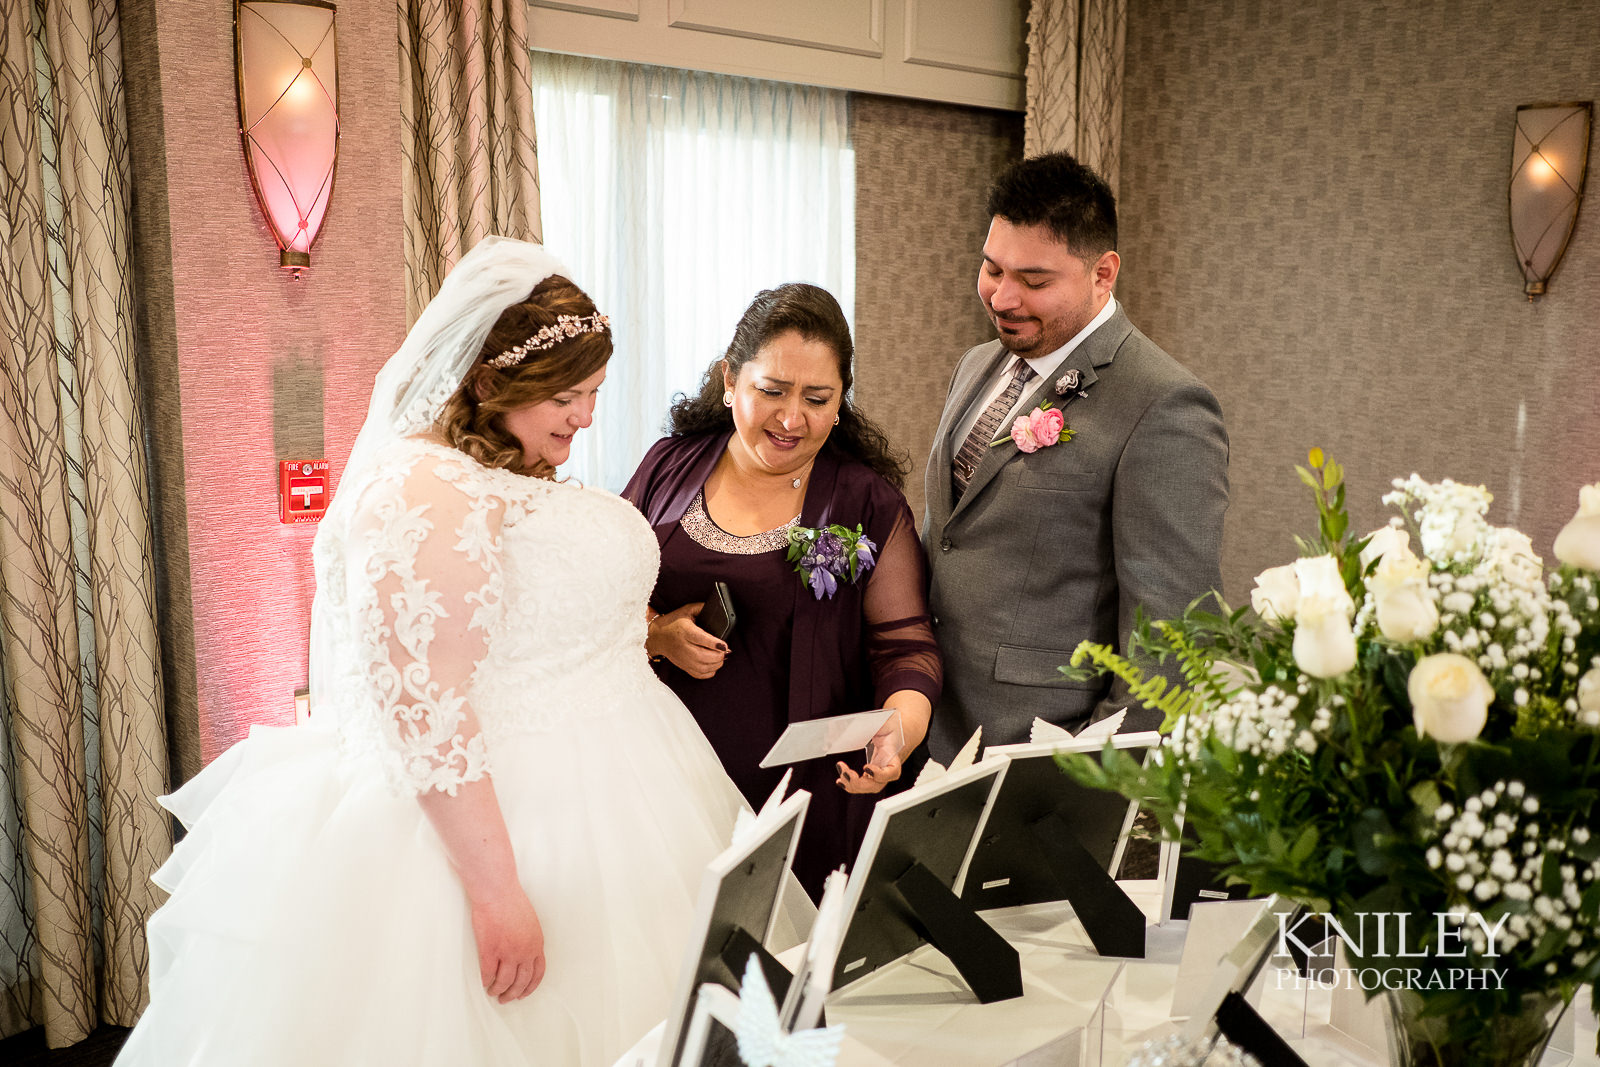 089 - Woodcliff Hotel - Rochester NY wedding photo - Kniley Photography.jpg